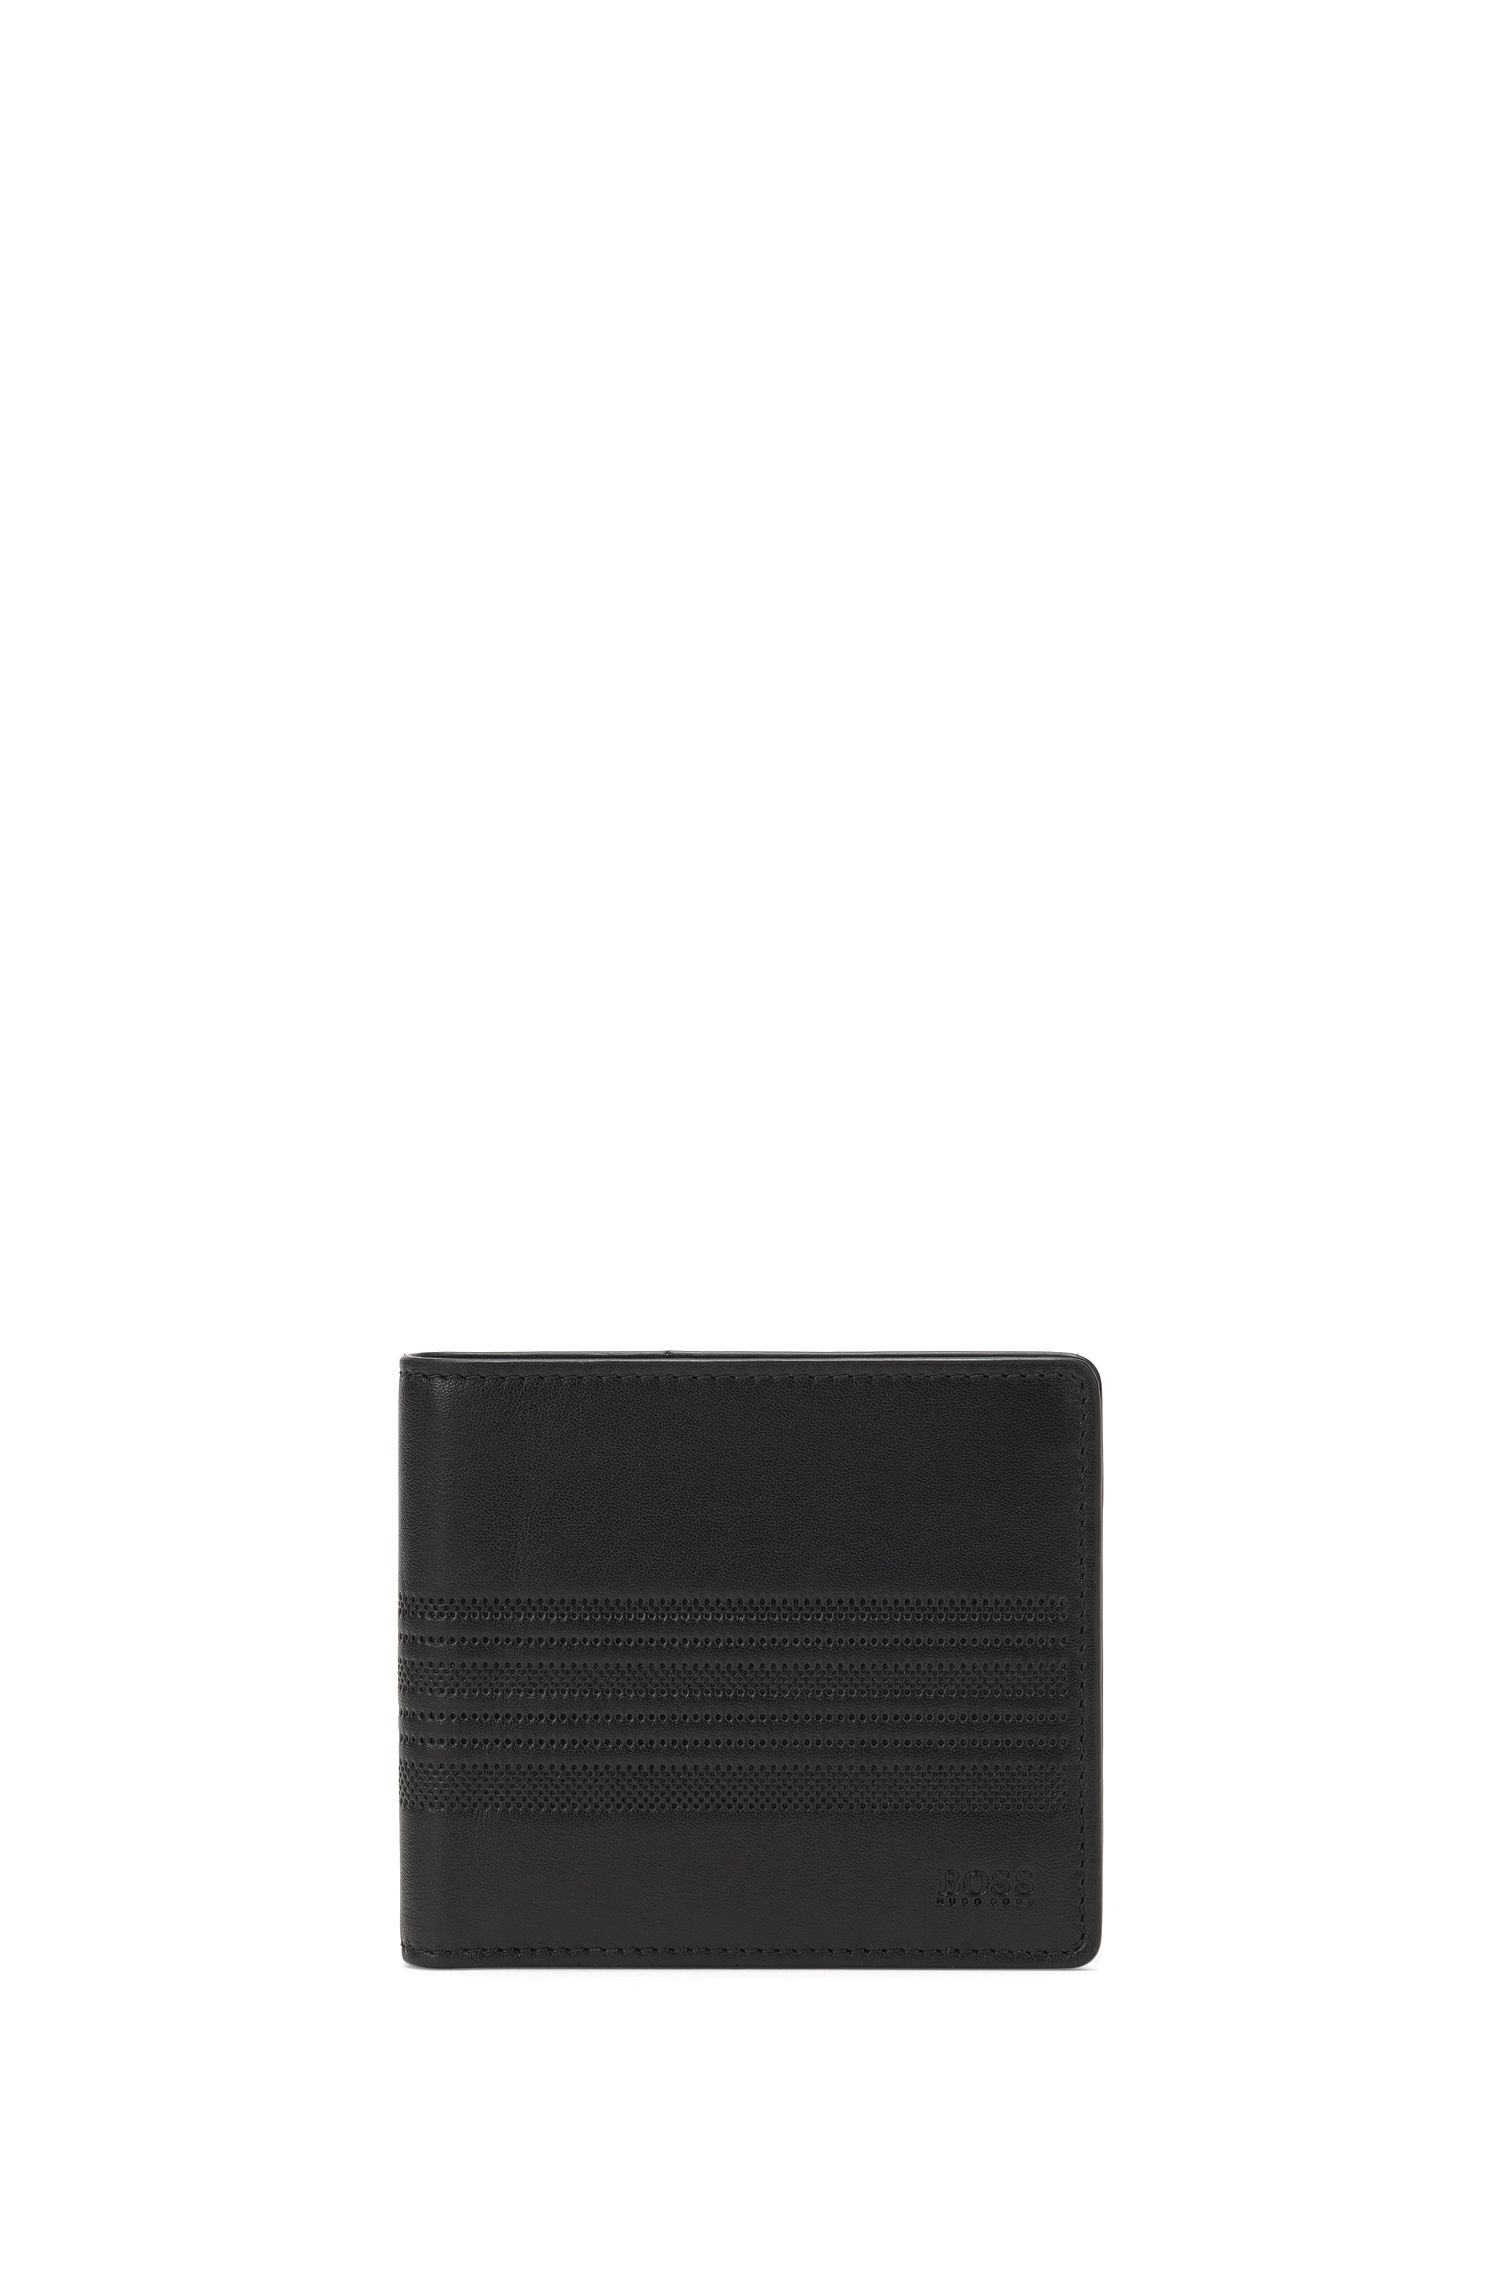 'S Card'   Leather Wallet